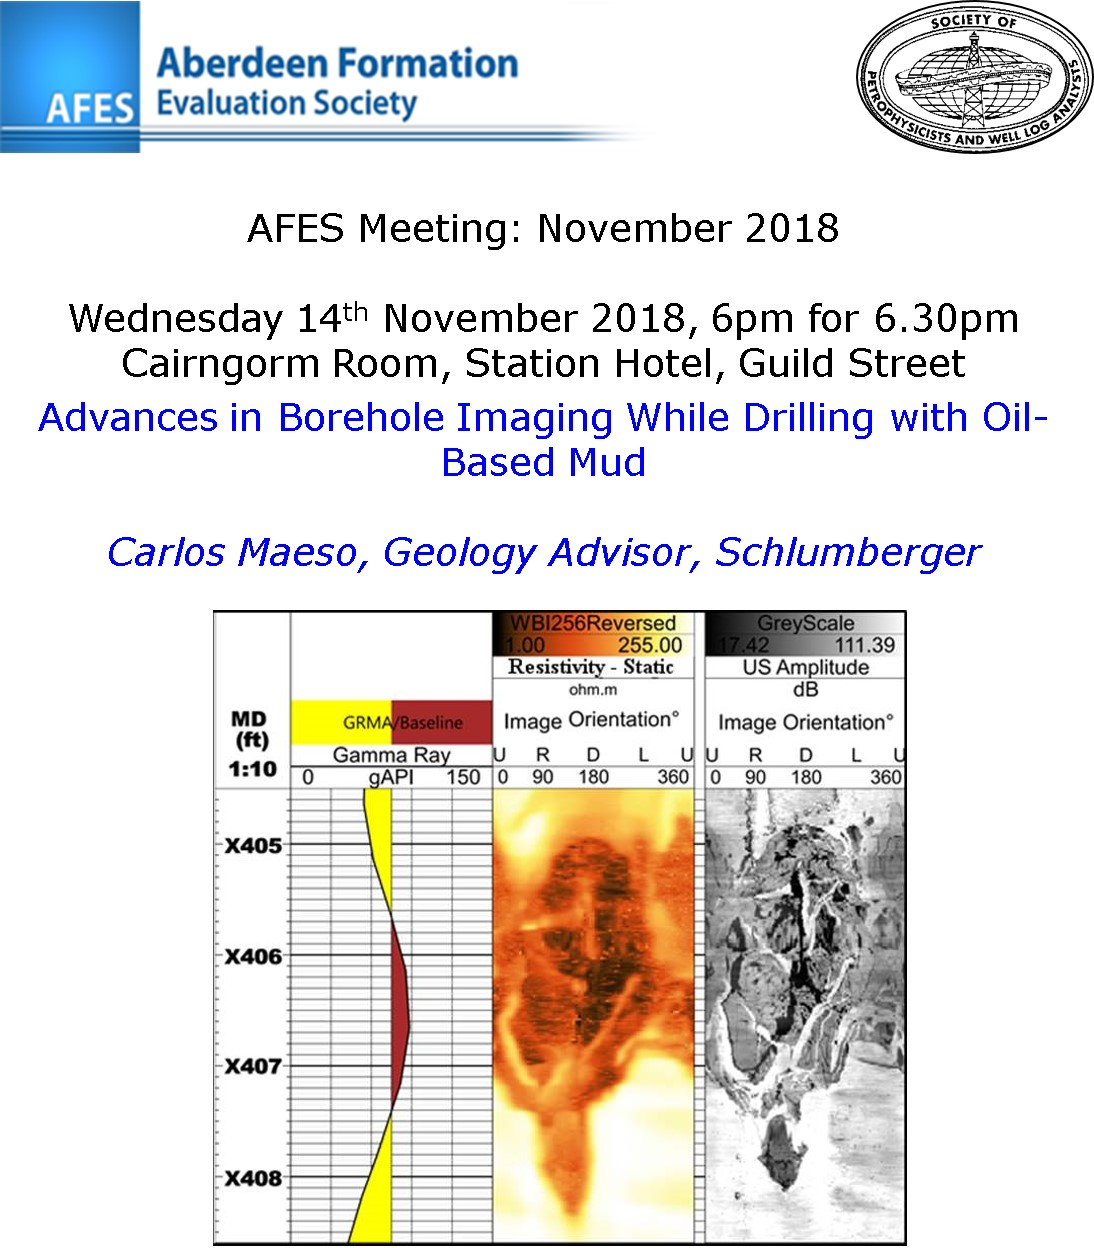 AFES Meeting: 14th November, 2018